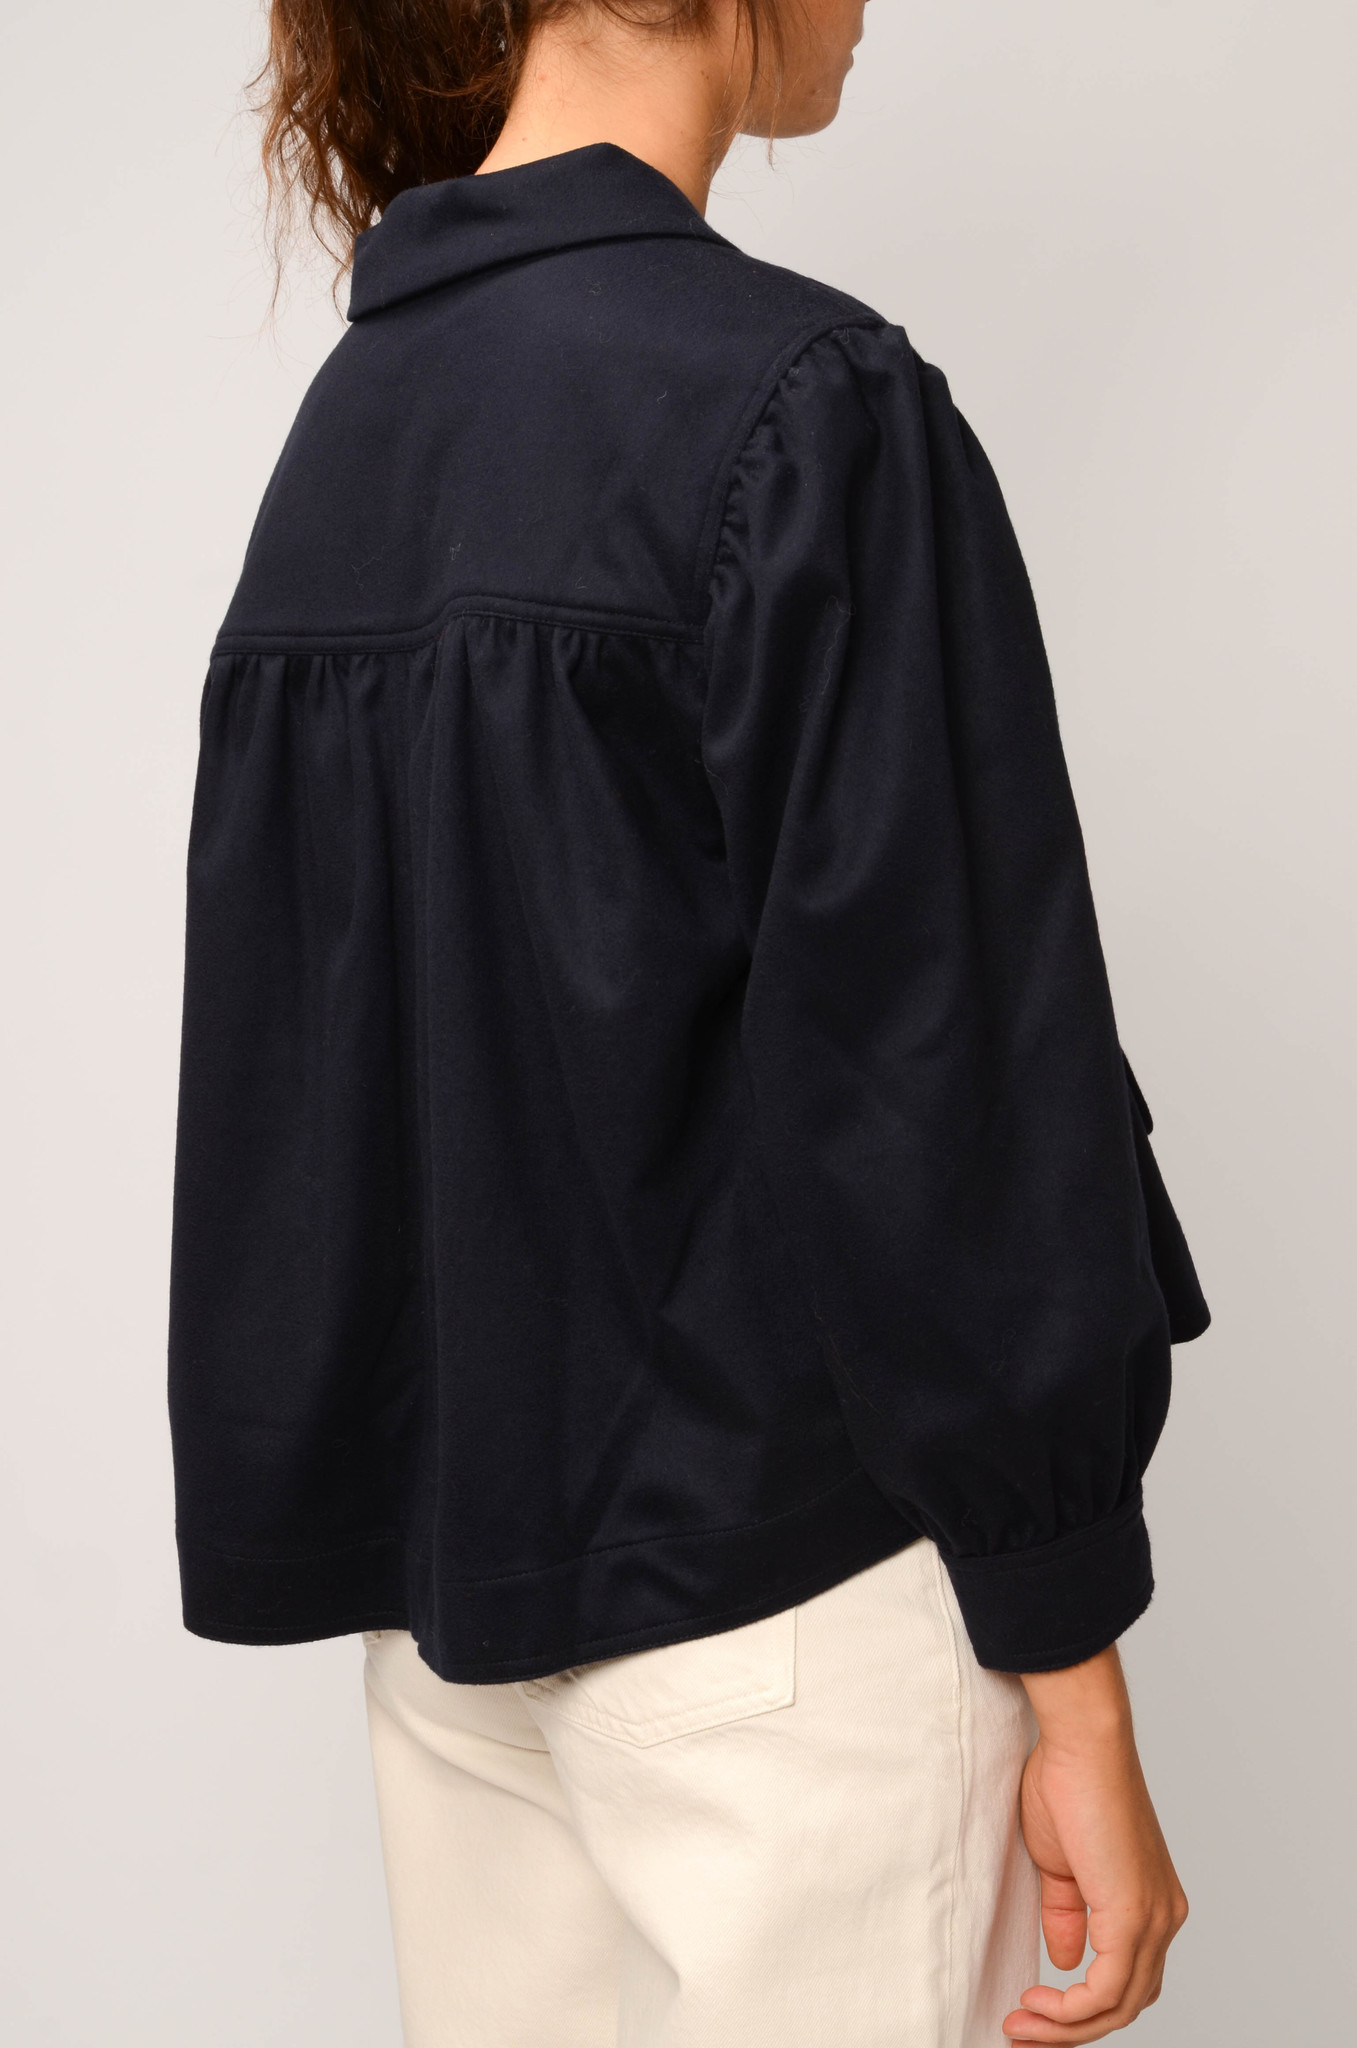 CATHERIN BLOUSE IN NAVY-4